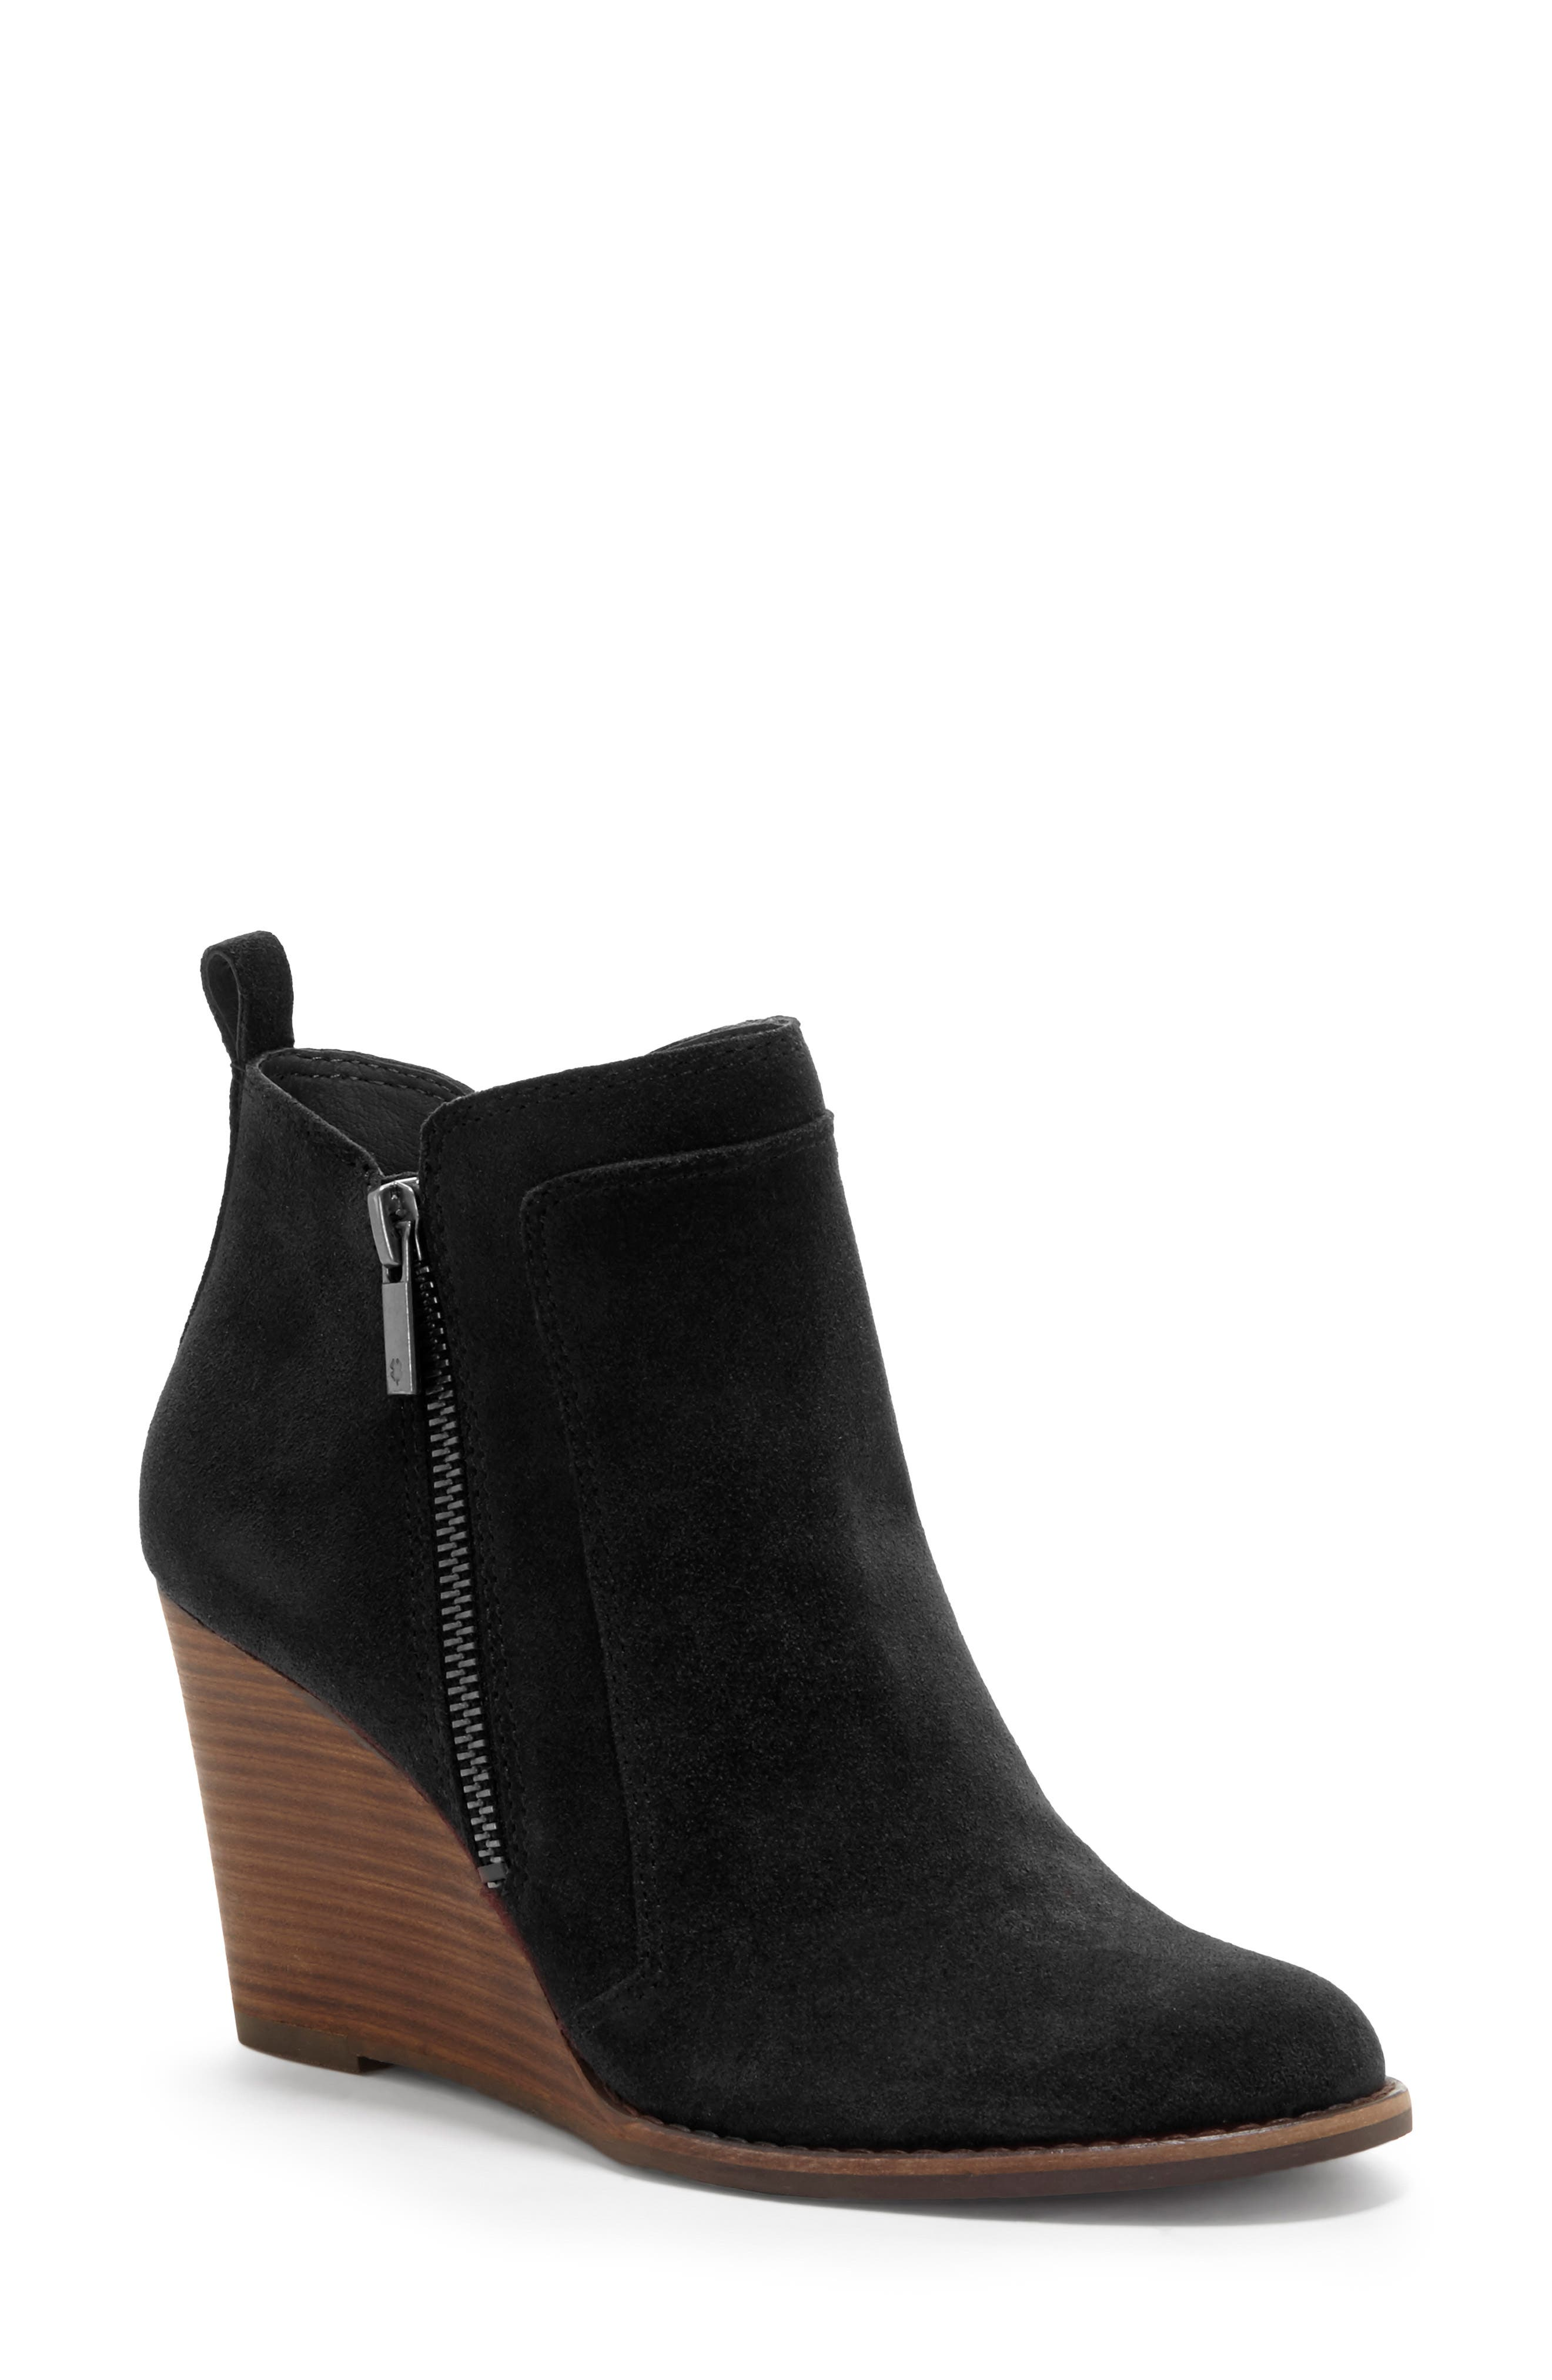 LUCKY BRAND Yahir Wedge Bootie, Main, color, BLACK SUEDE